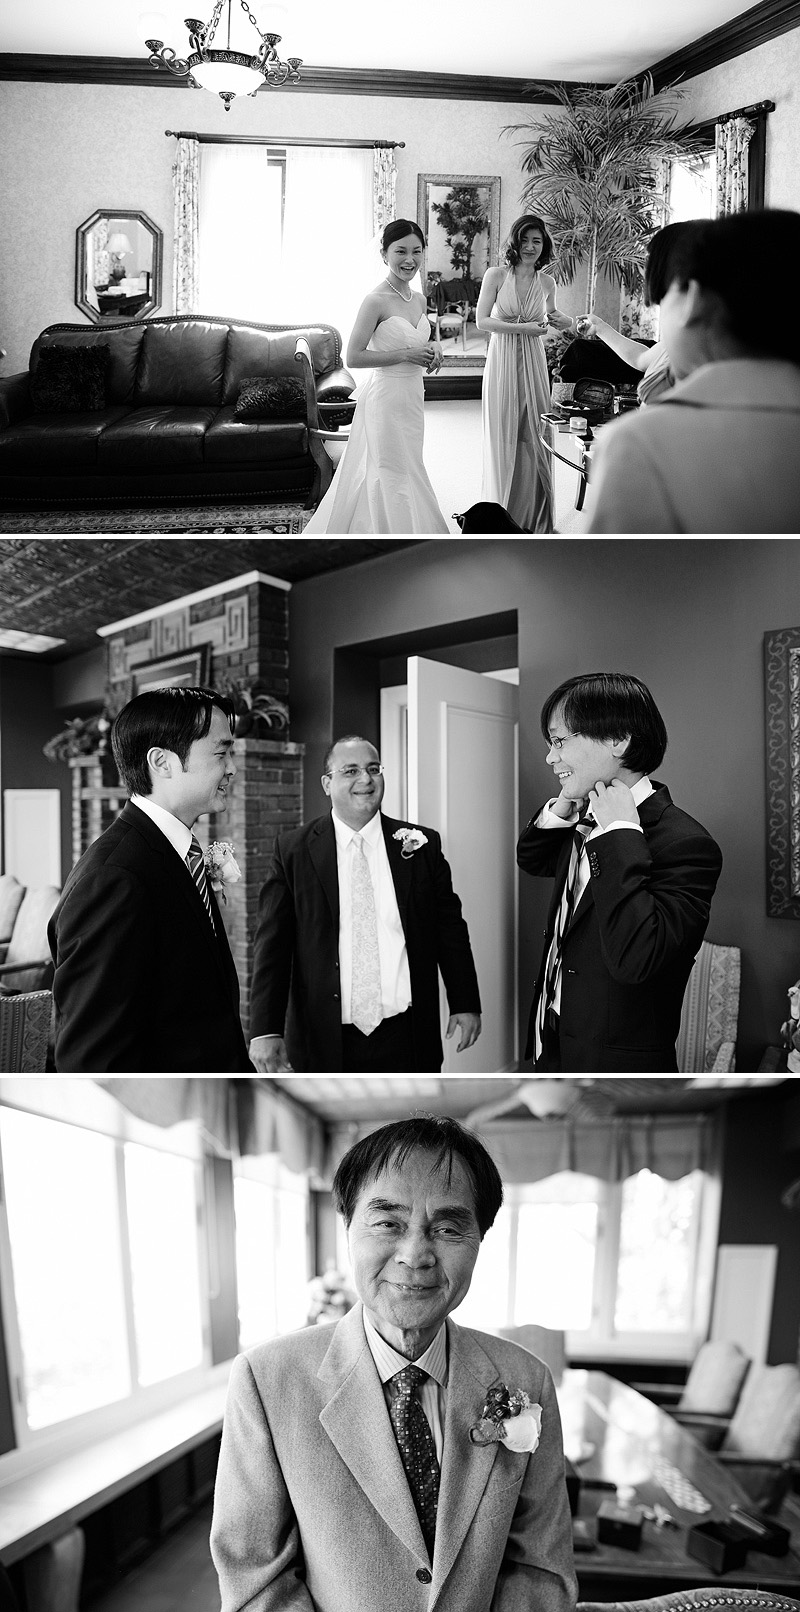 Guys hanging out before a wedding.